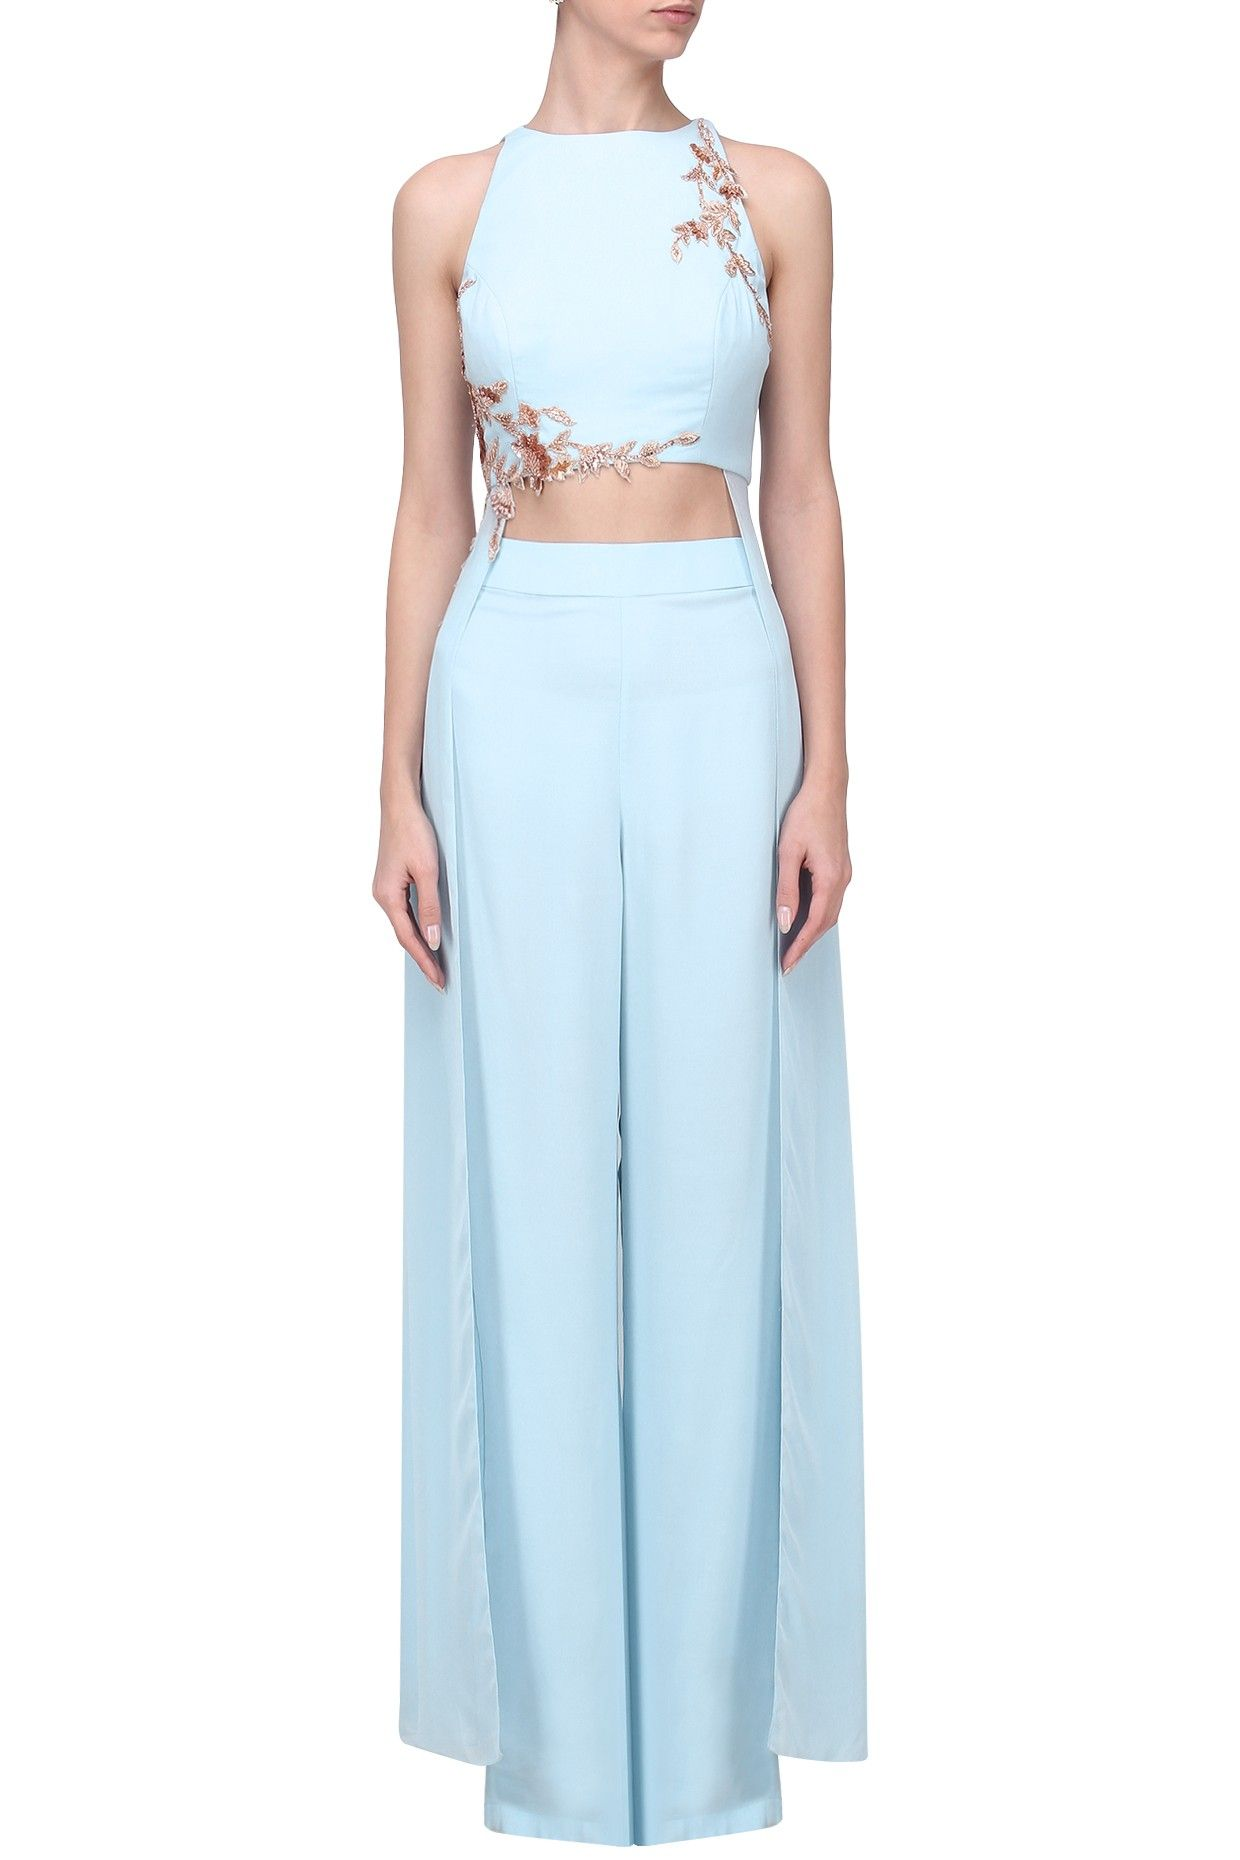 44e415e43b54 PINK PEACOCK COUTURE Powder Blue Embroidered Crop Top with Palazzo Pants  Set. Shop Now! #pinkpeacockcouture #contemporary #indowestern #powderblue  #jumpsuit ...